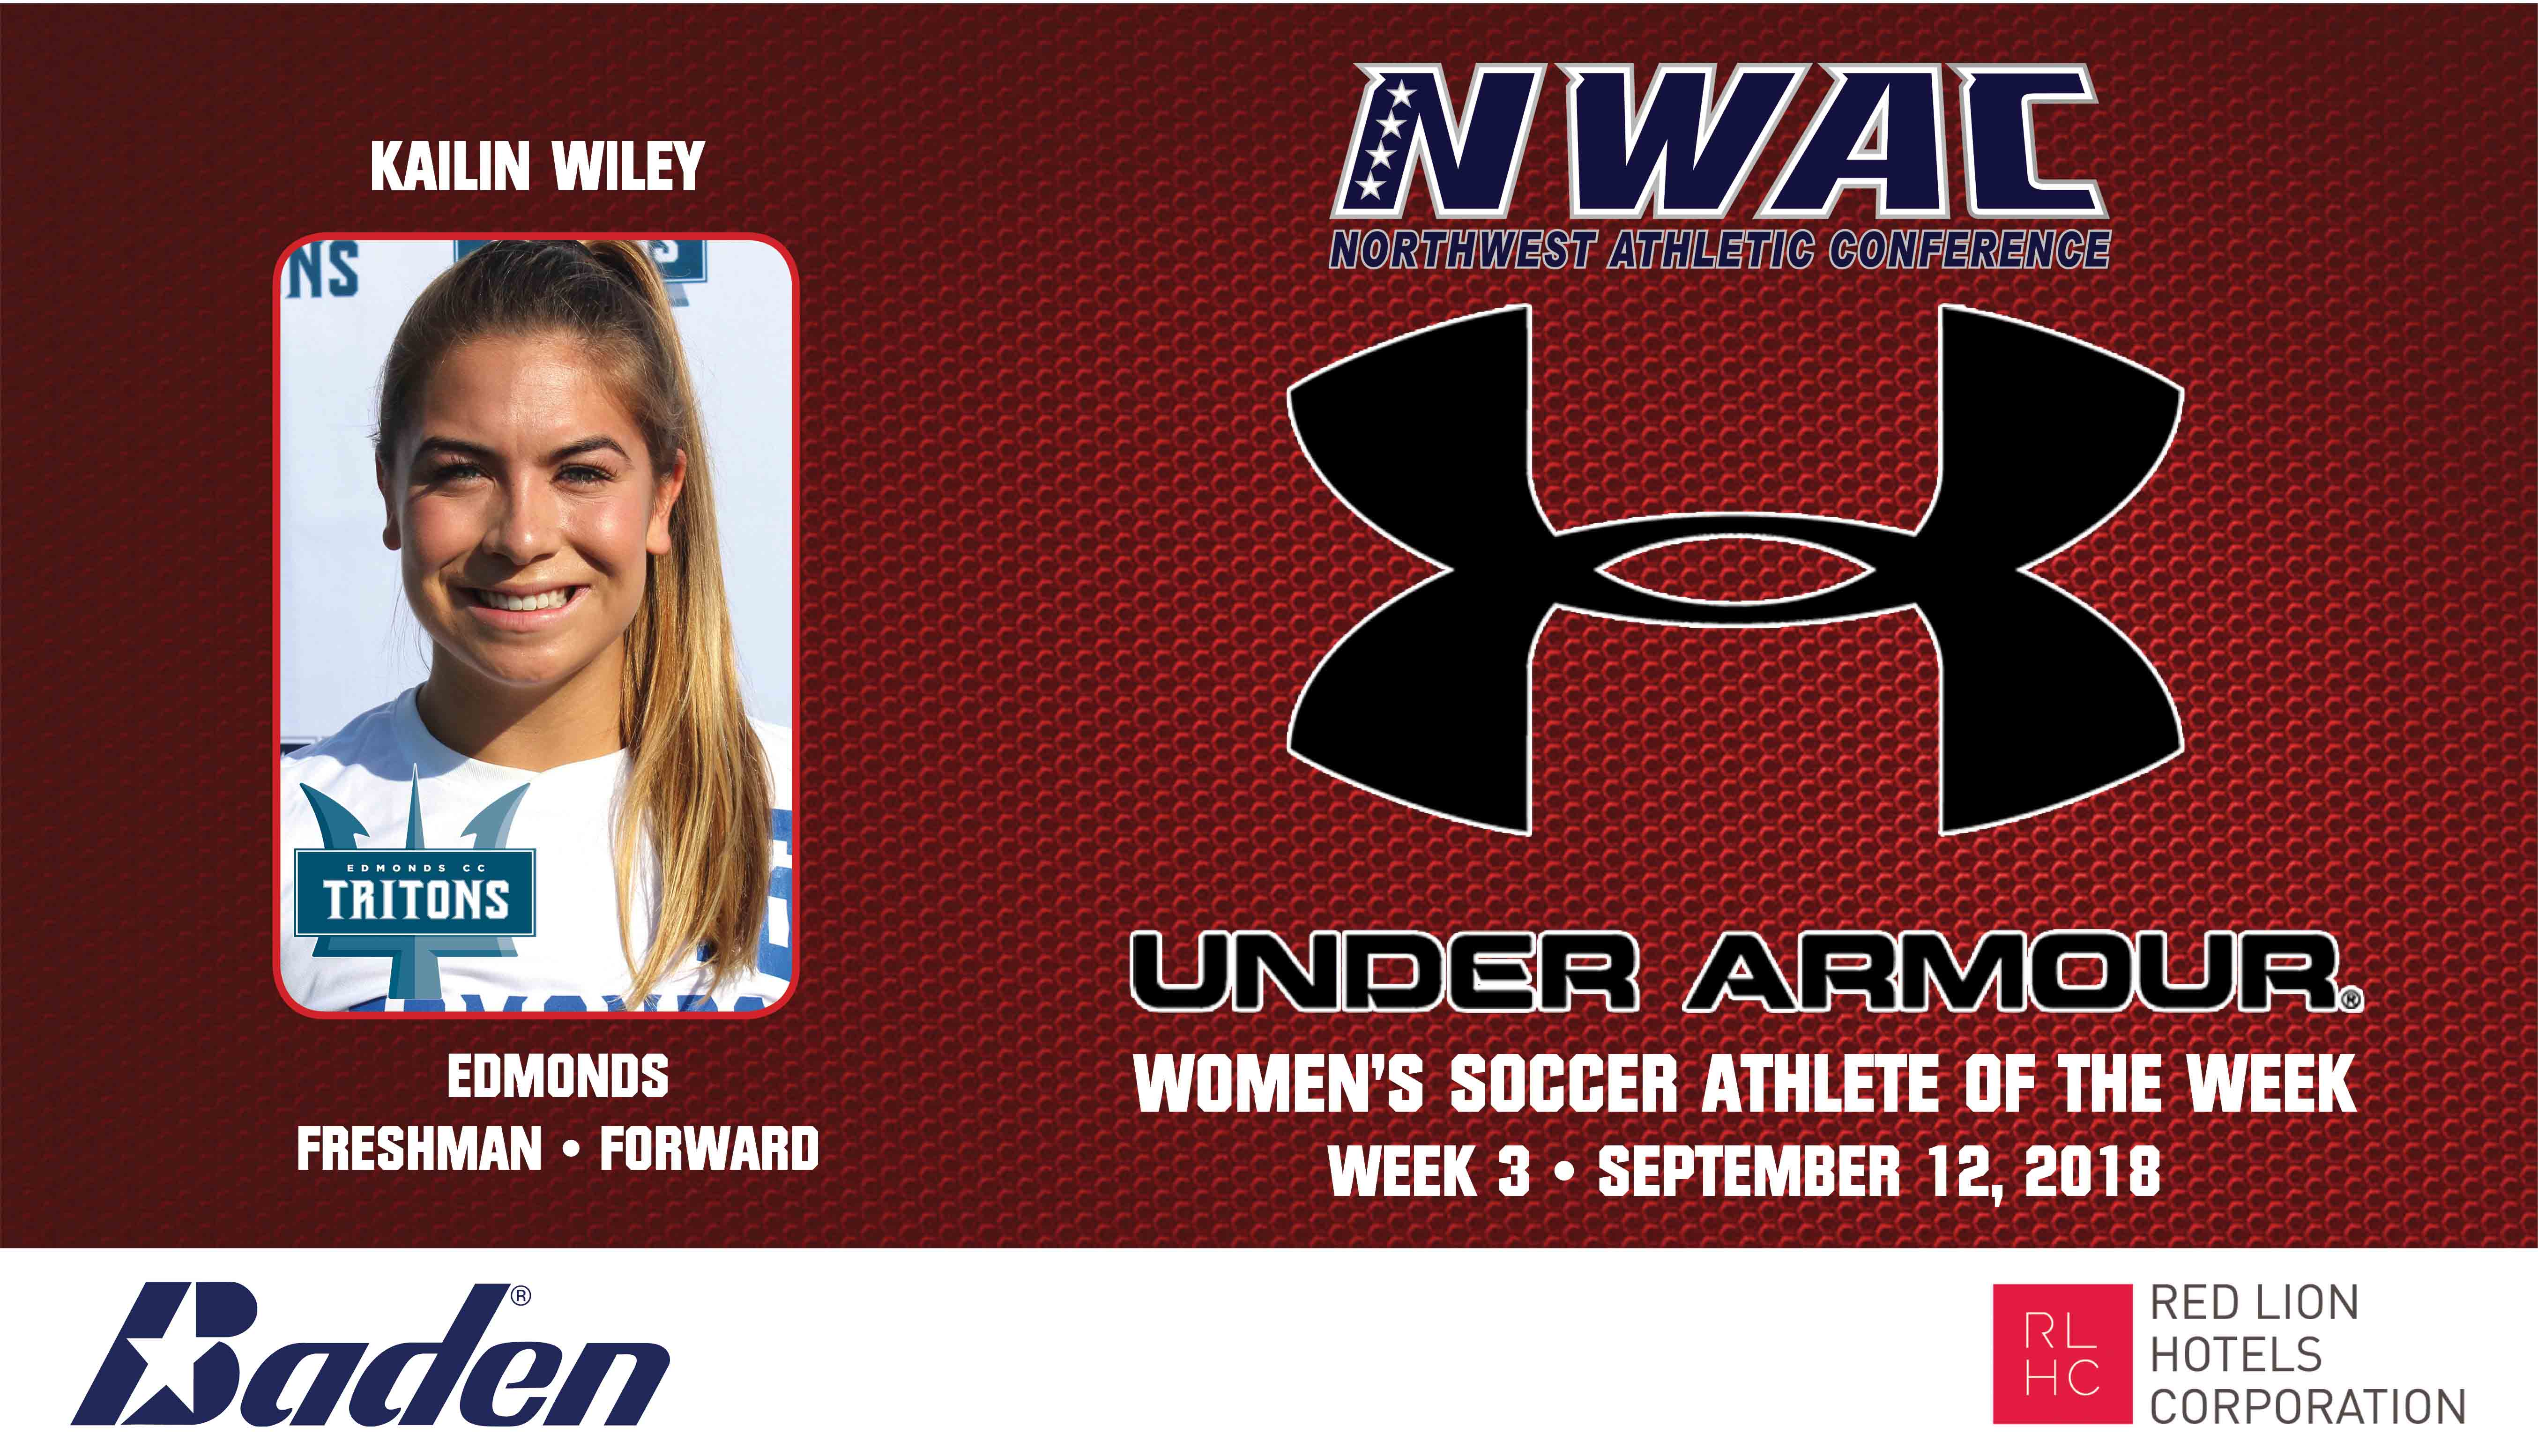 Kailin Wiley Armour Player of the Week graphic